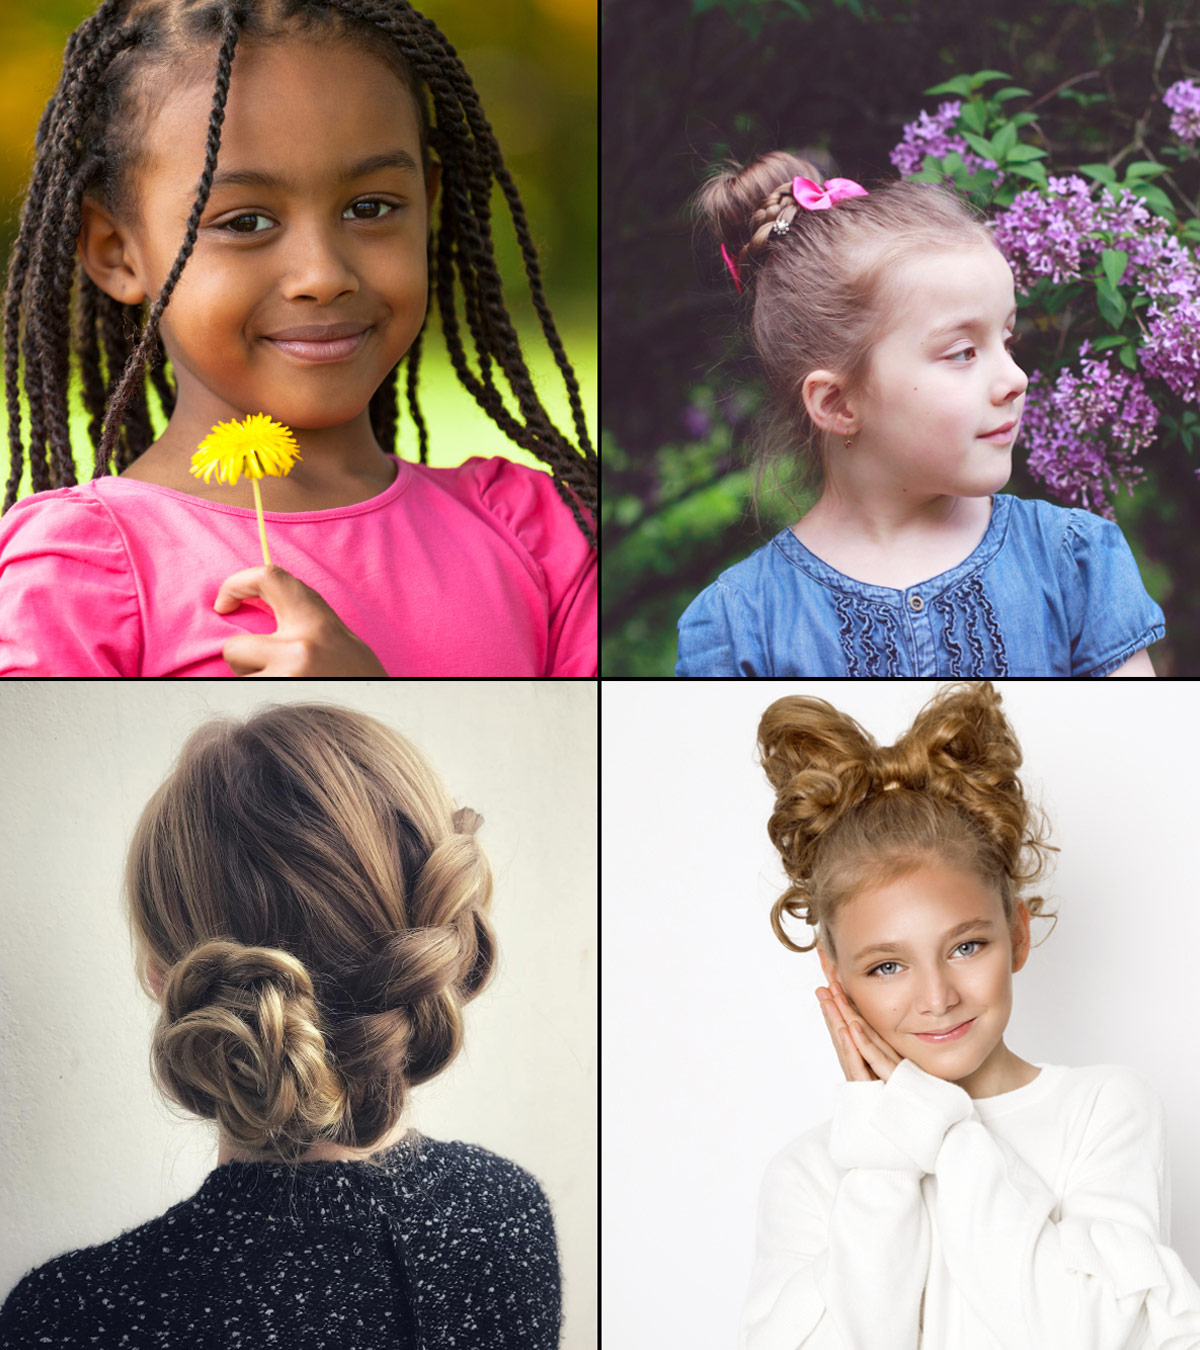 Recent Turned And Twisted Pigtails Hairstyles With Front Fringes With Regard To 19 Super Easy Hairstyles For Girls (View 15 of 20)